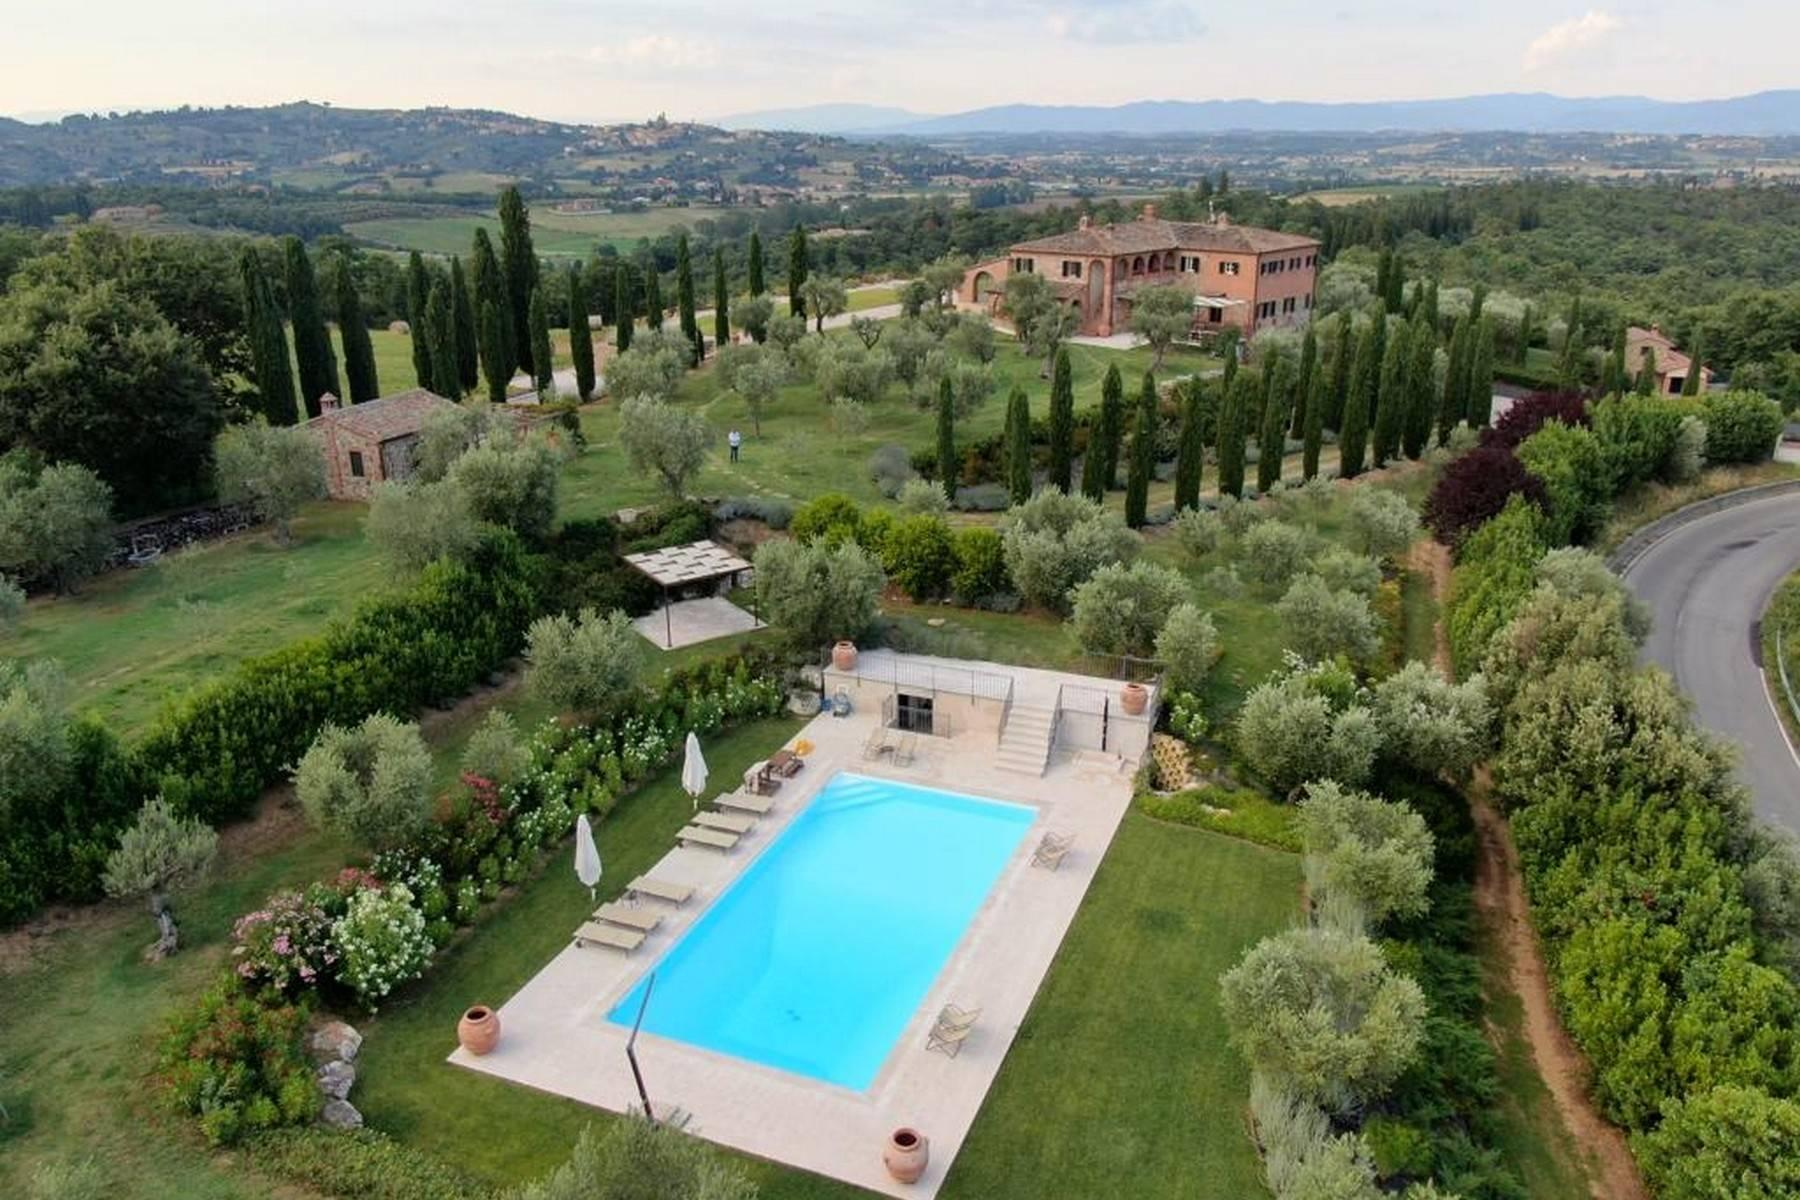 Stunning eco-friendly countryhome in the heart of Tuscany - 2